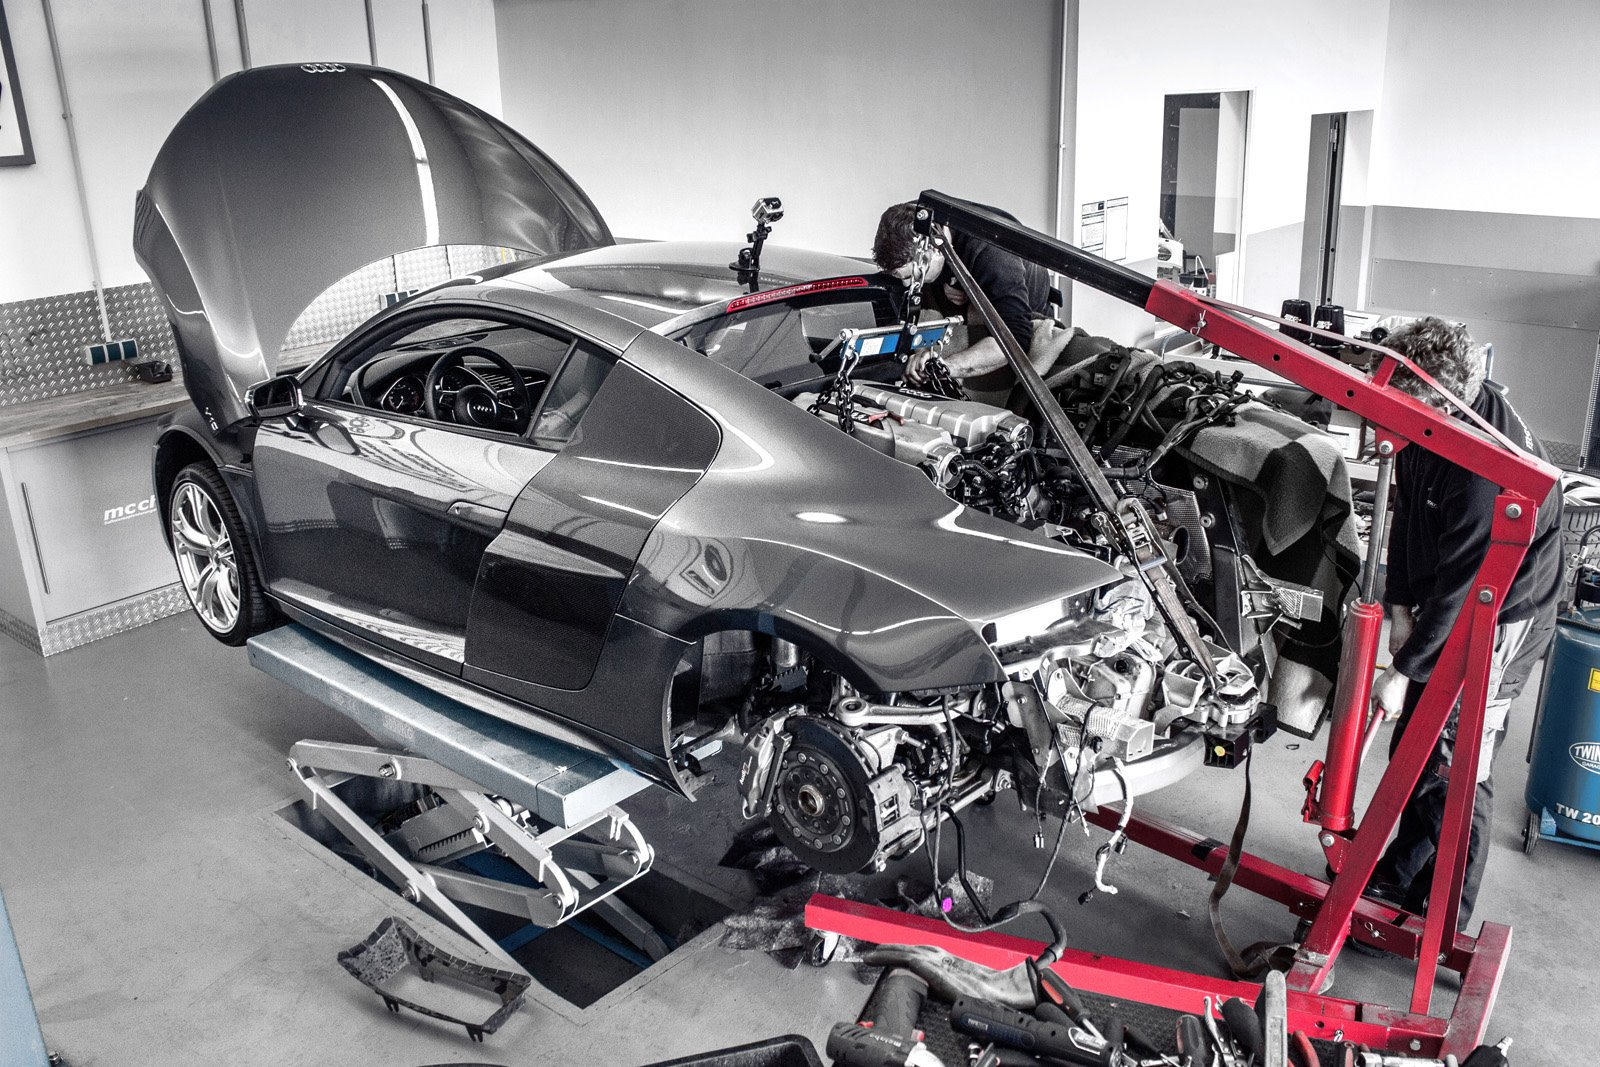 Old Audi R V Supercharged To HP By McchipDKR Autoevolution - Audi r8 engine